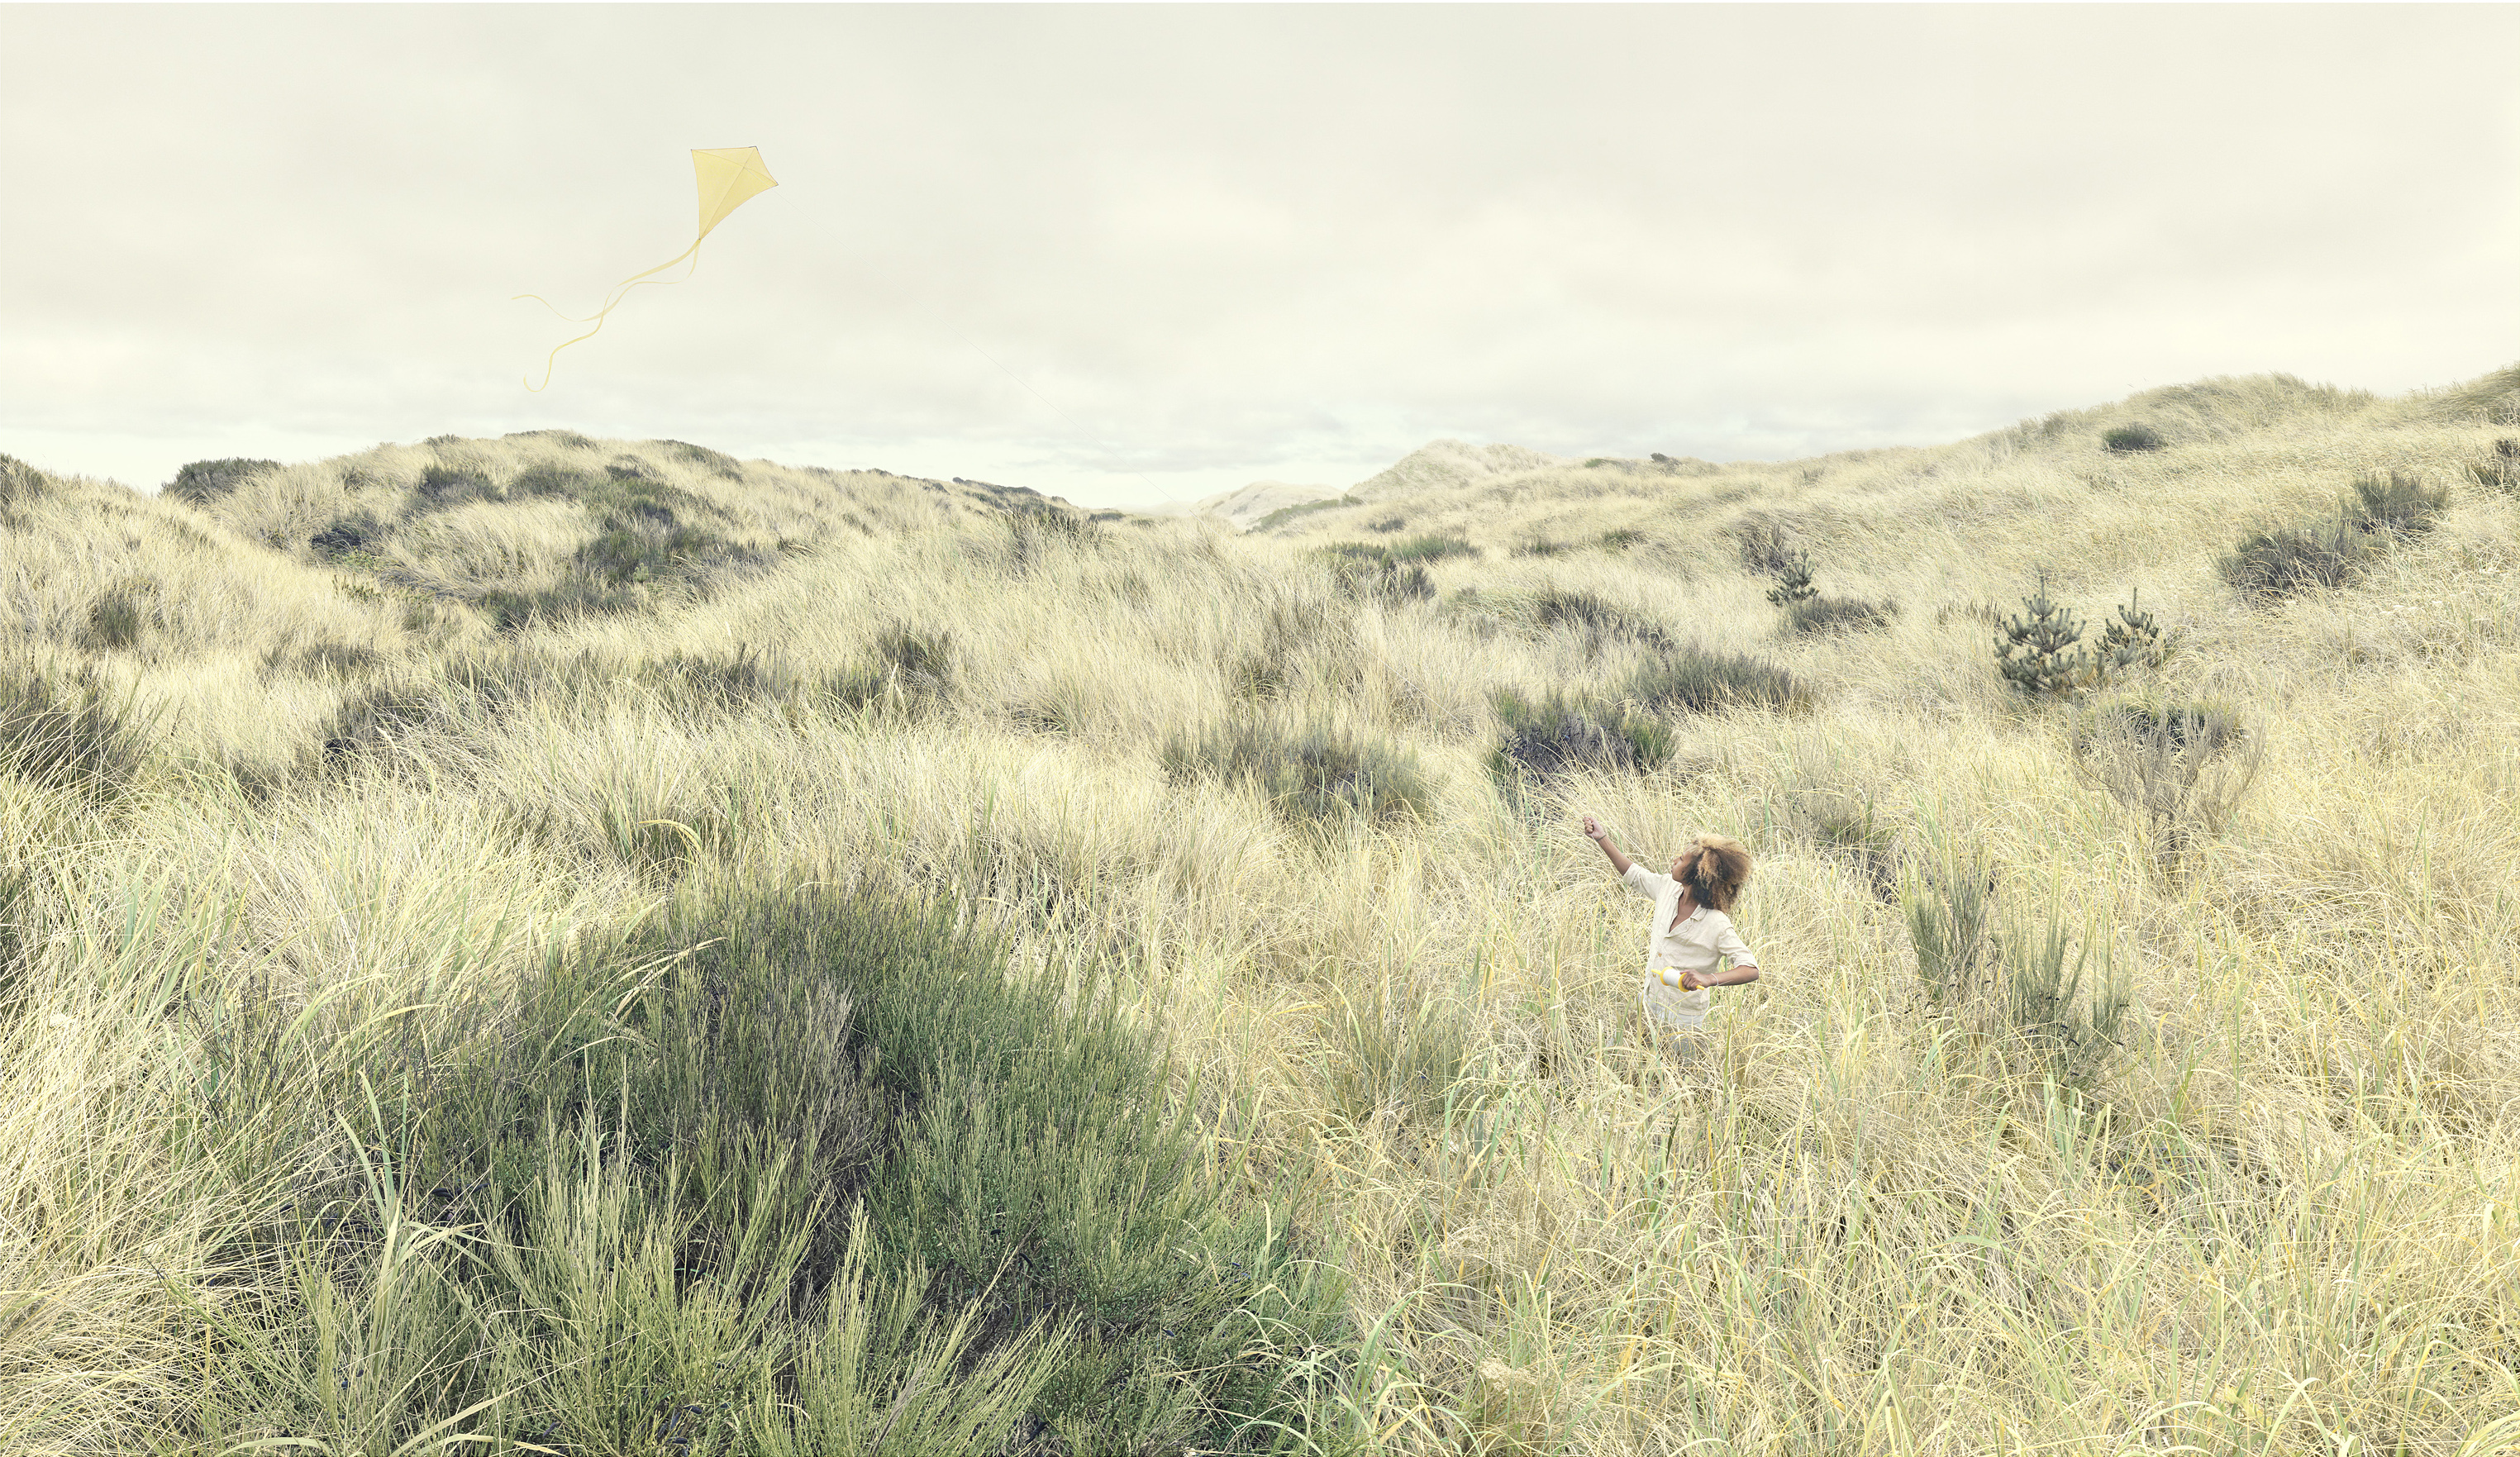 Tall Grass and Kite